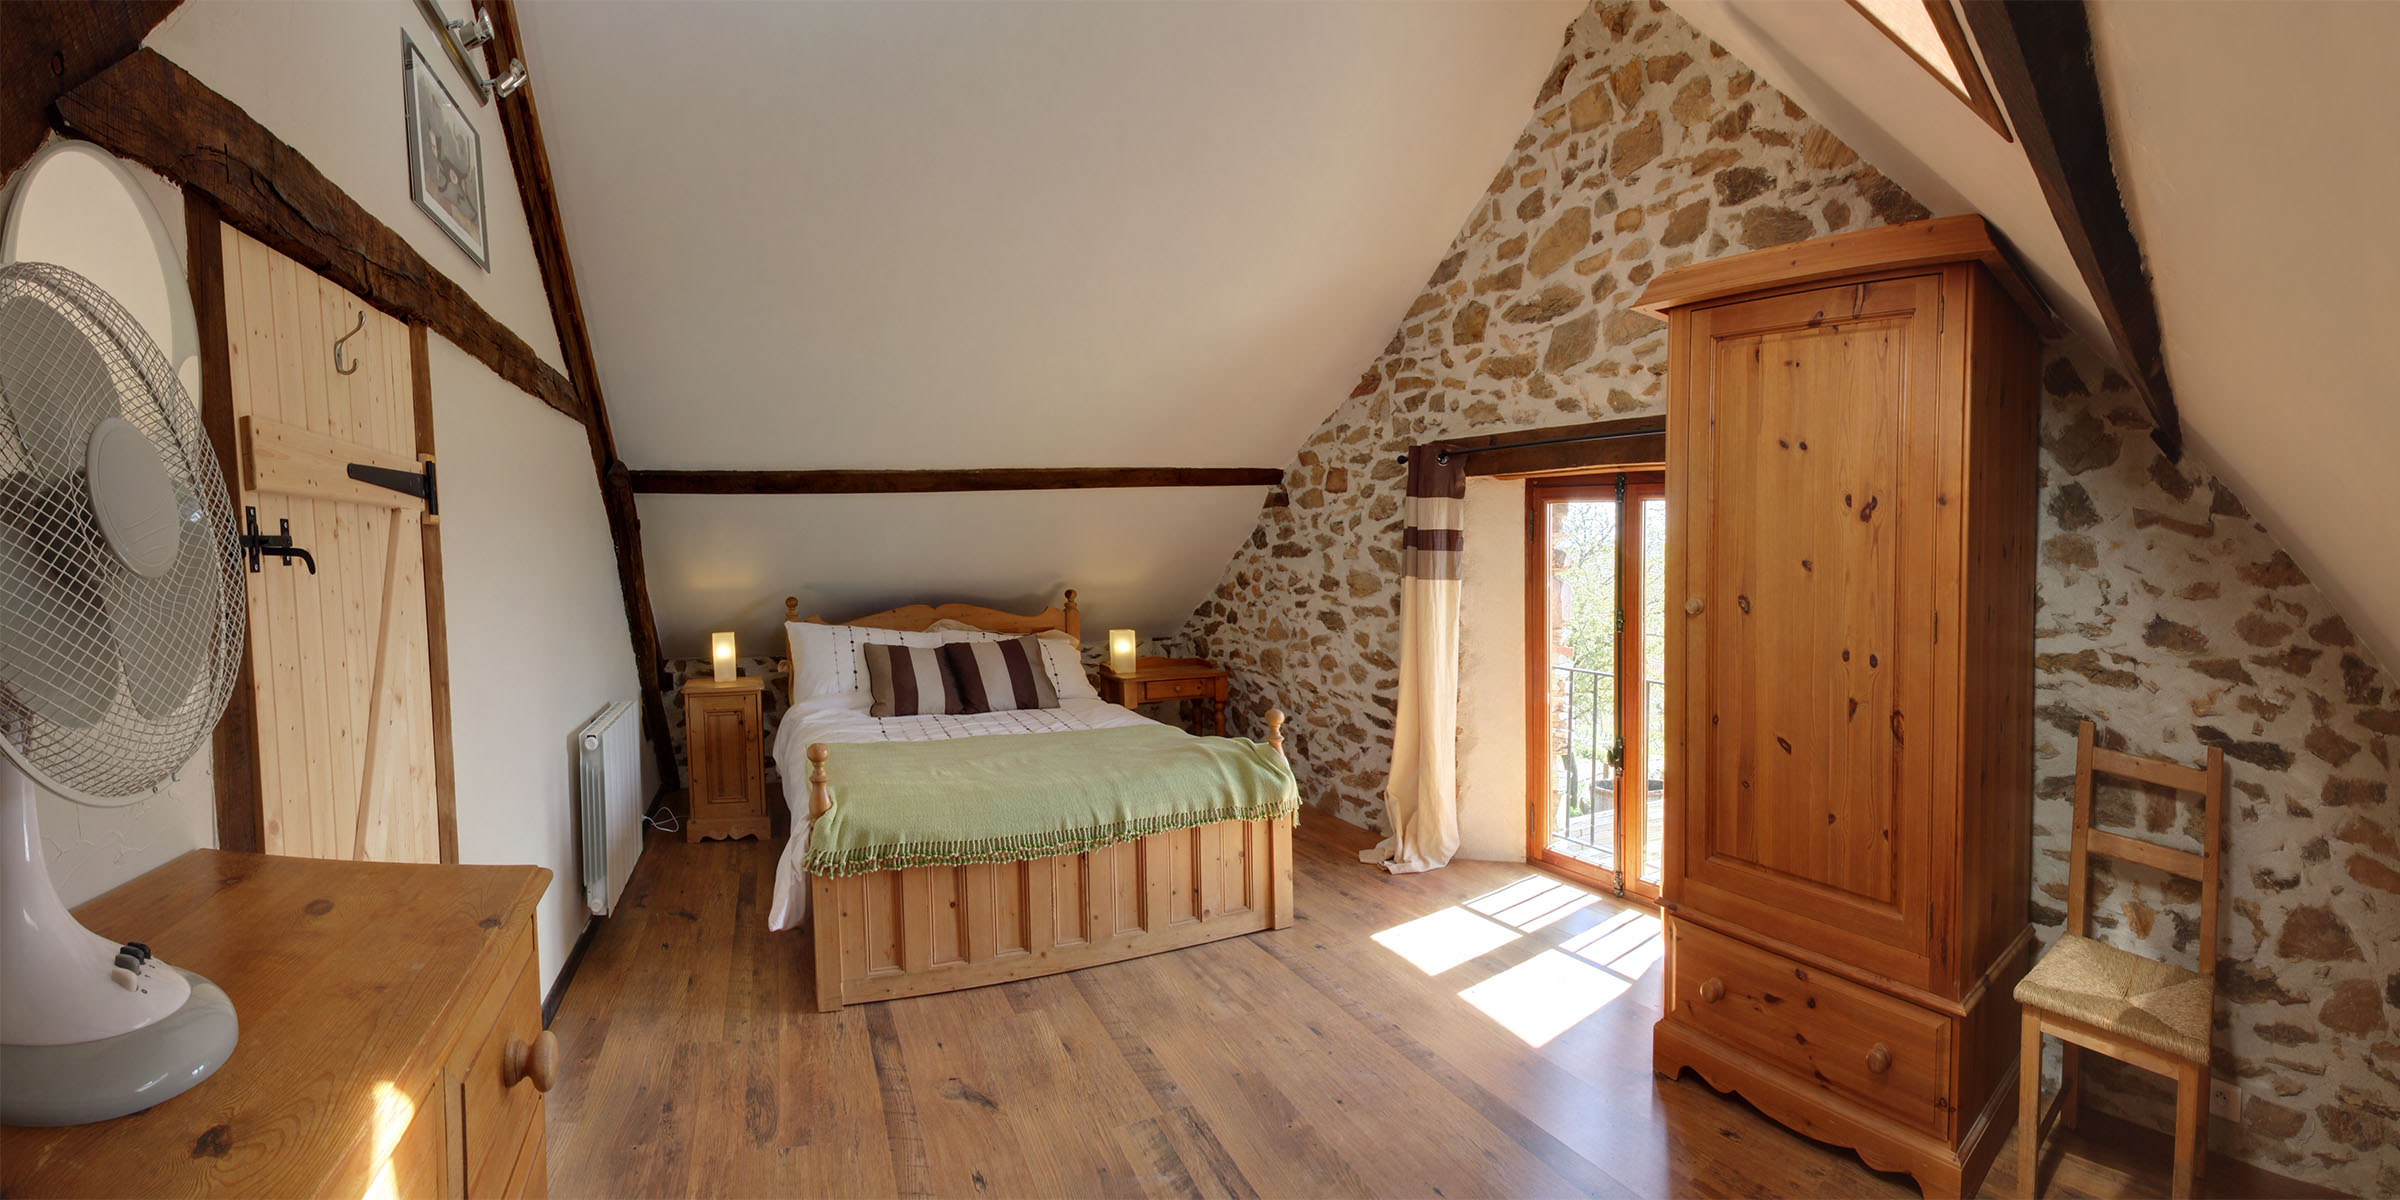 A double room with a view over the pool and Viaur valley beyond